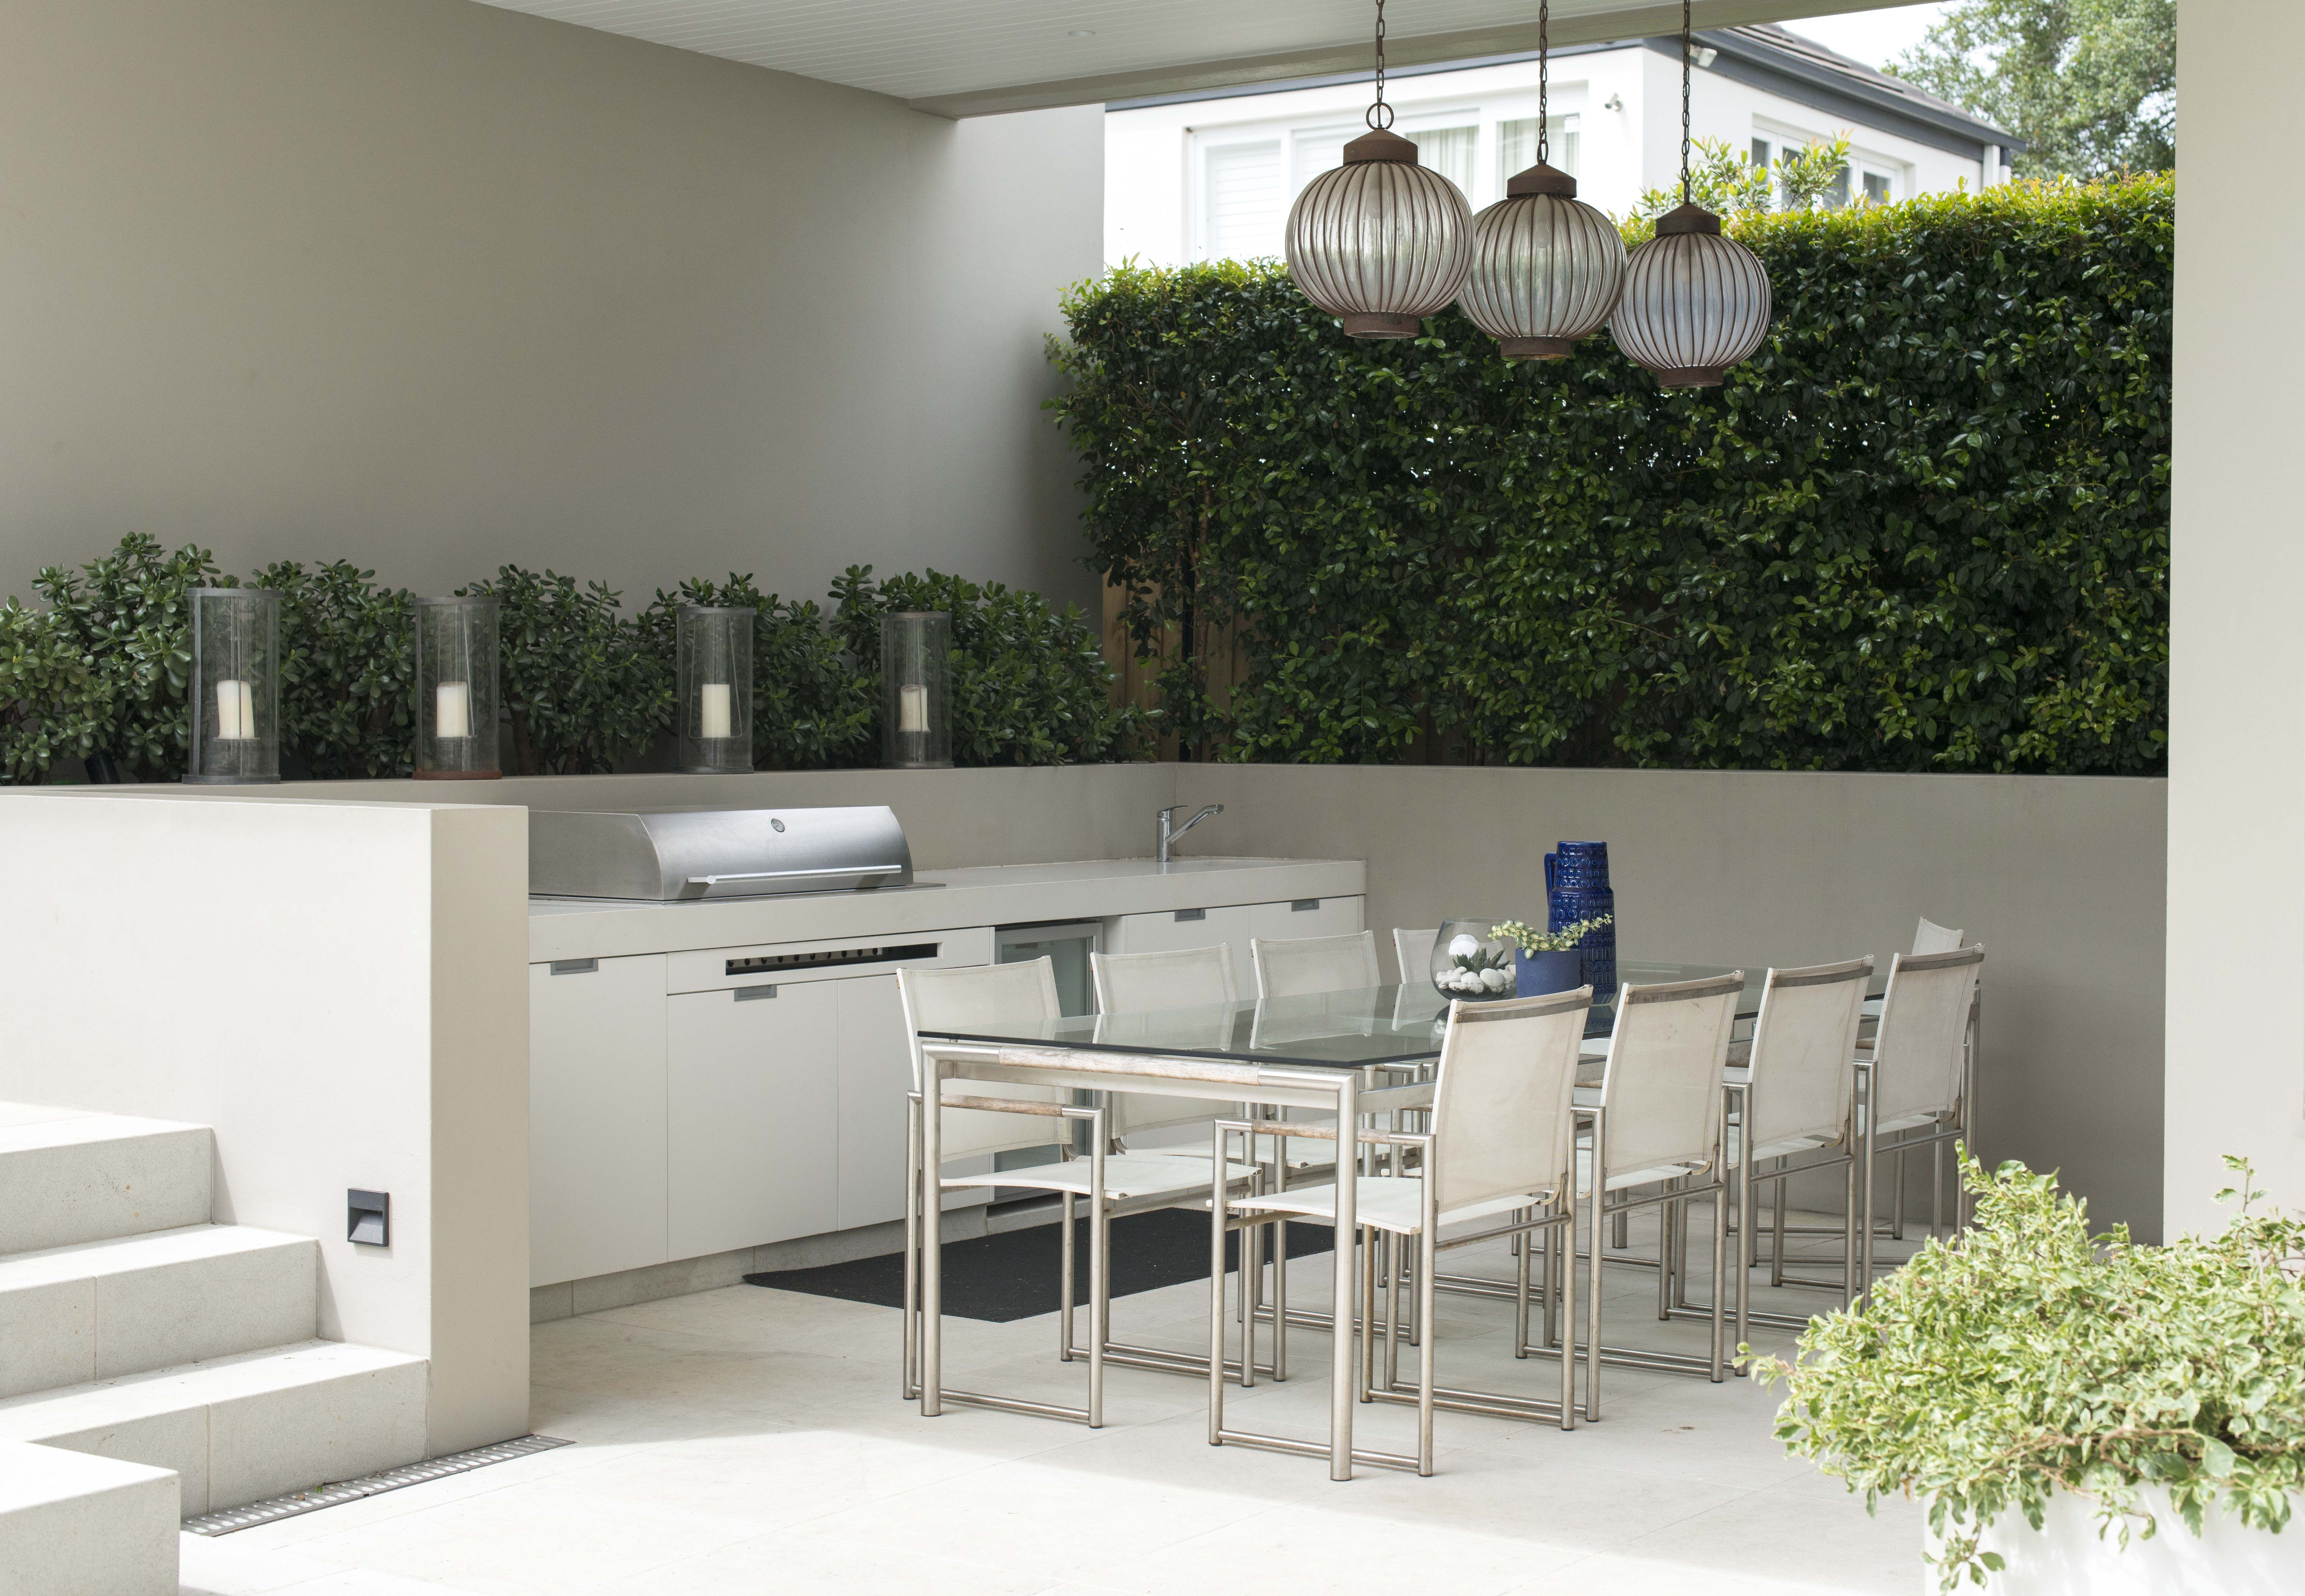 Undercover BBQ and entertainment area | Ogrody on Garden Entertainment Area Ideas id=14517